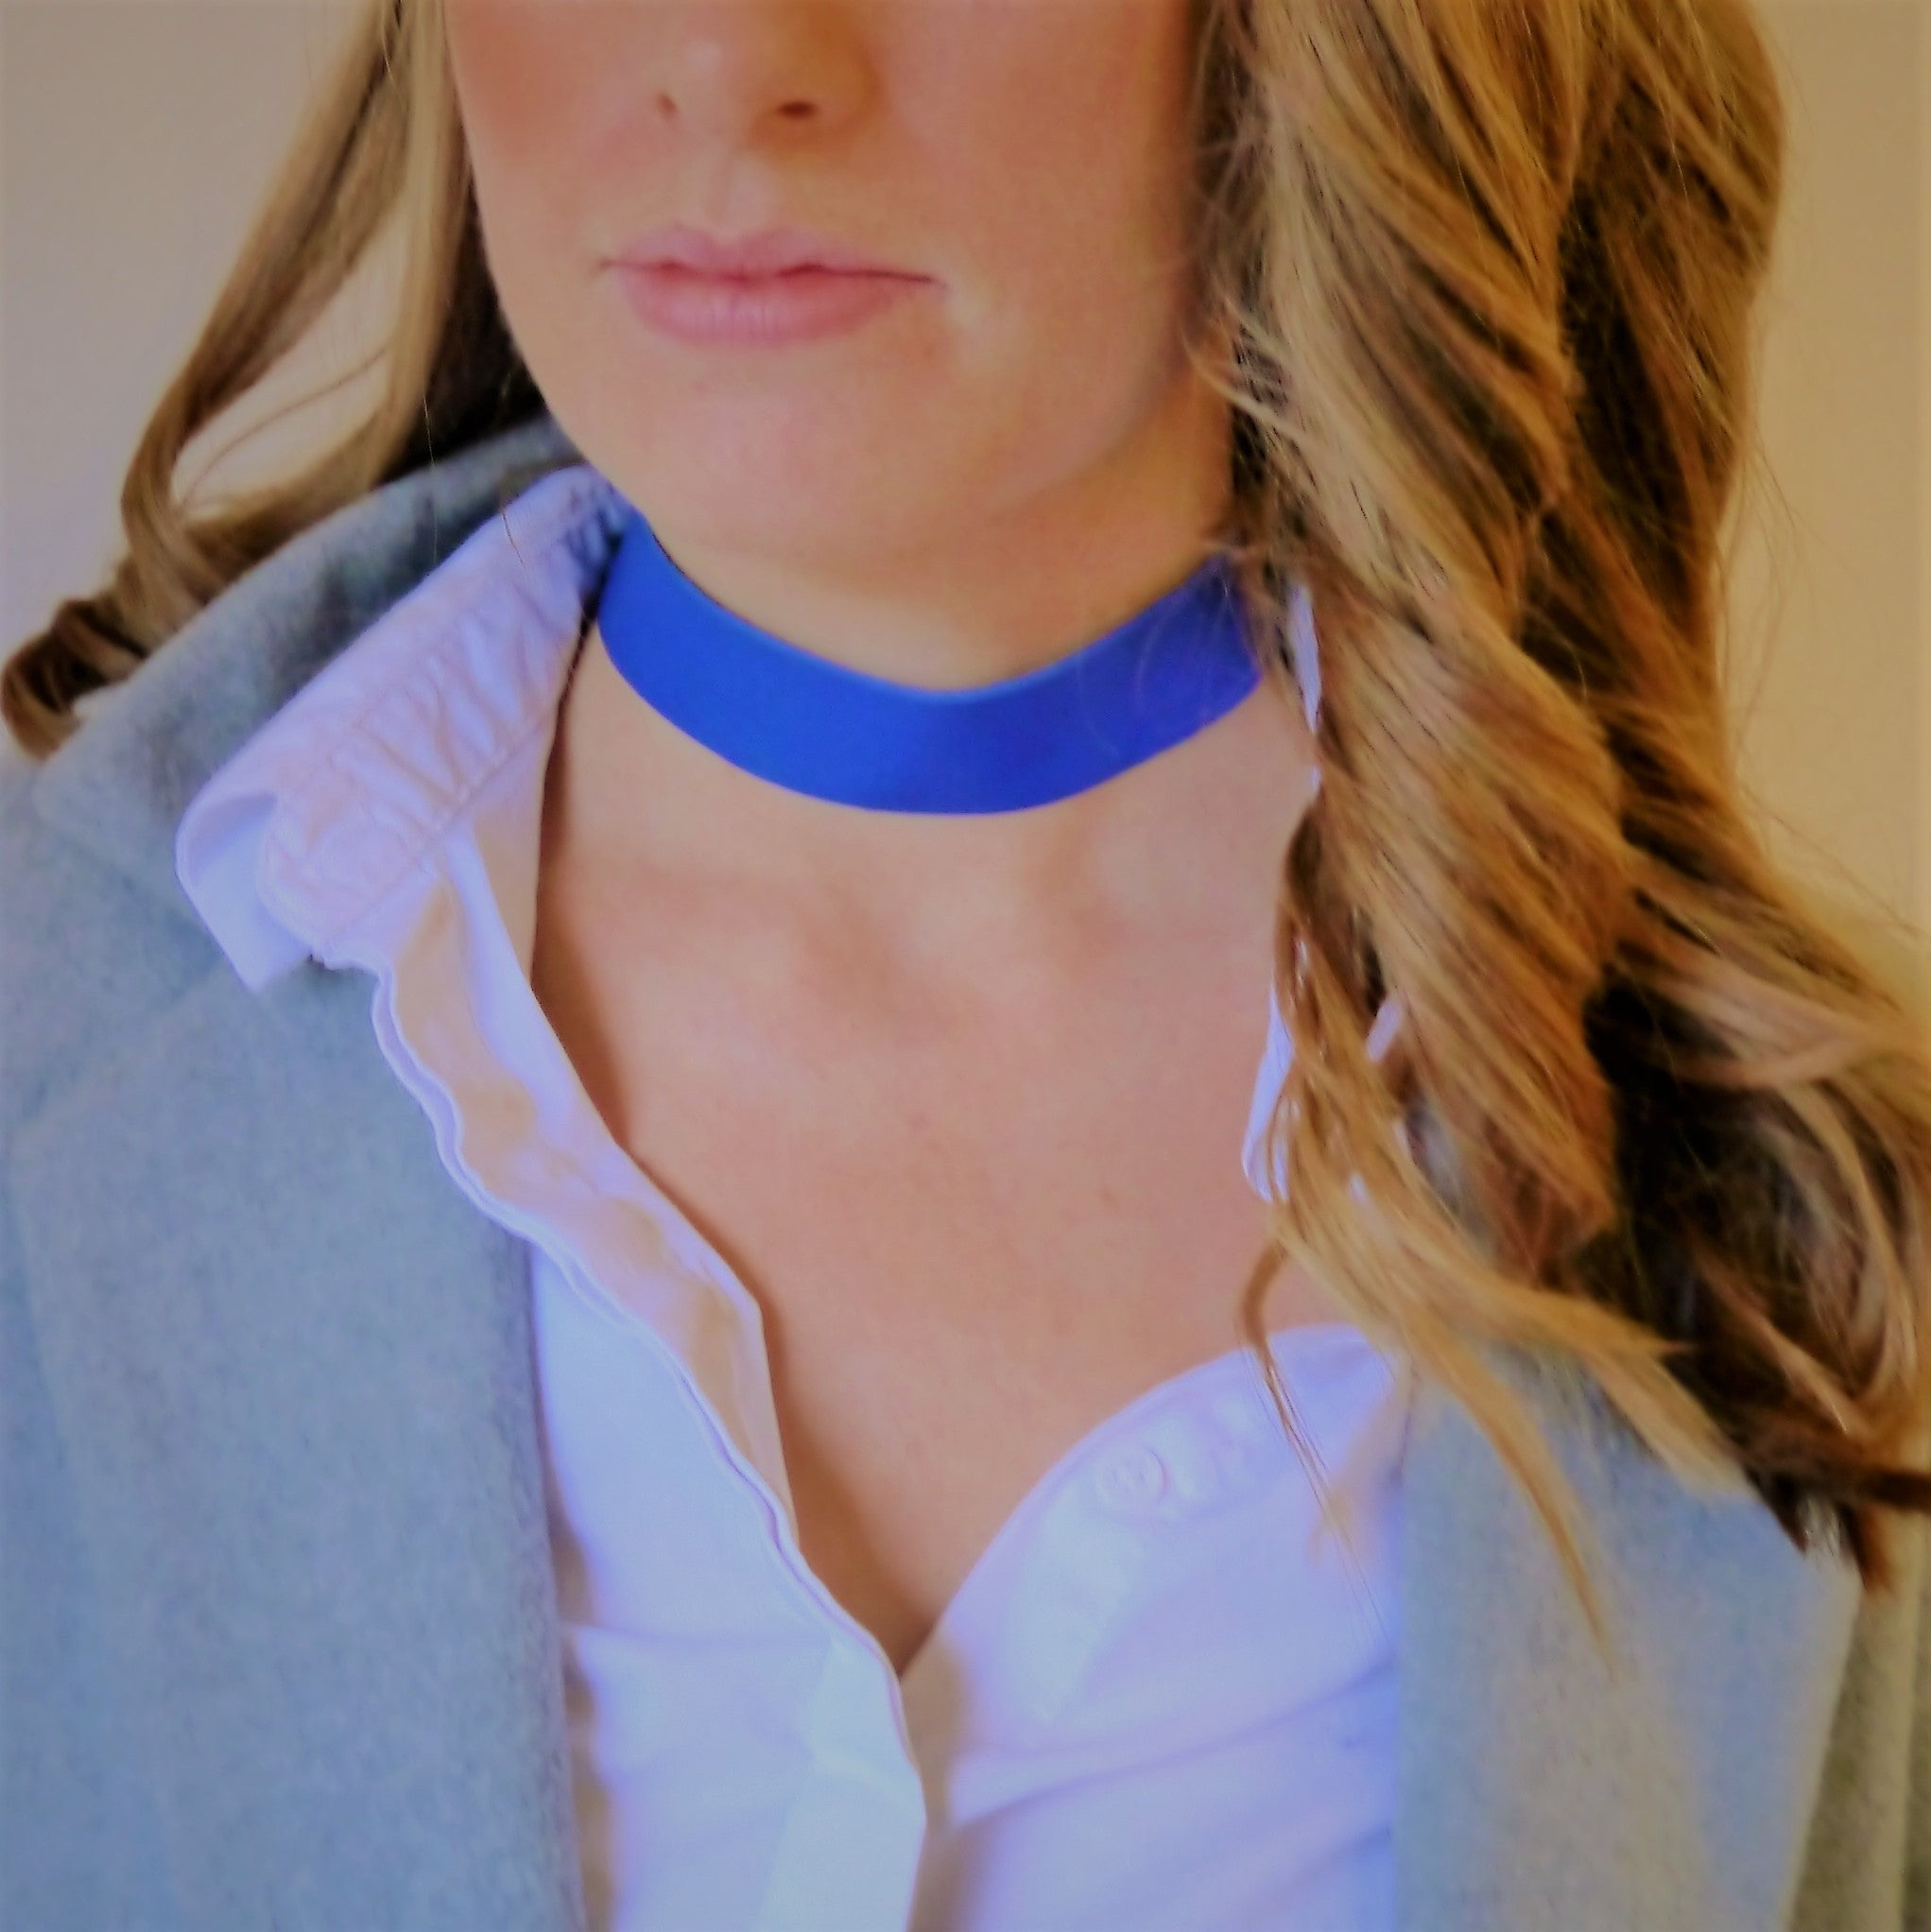 NEW IN - Leather choker - thick band - Blue